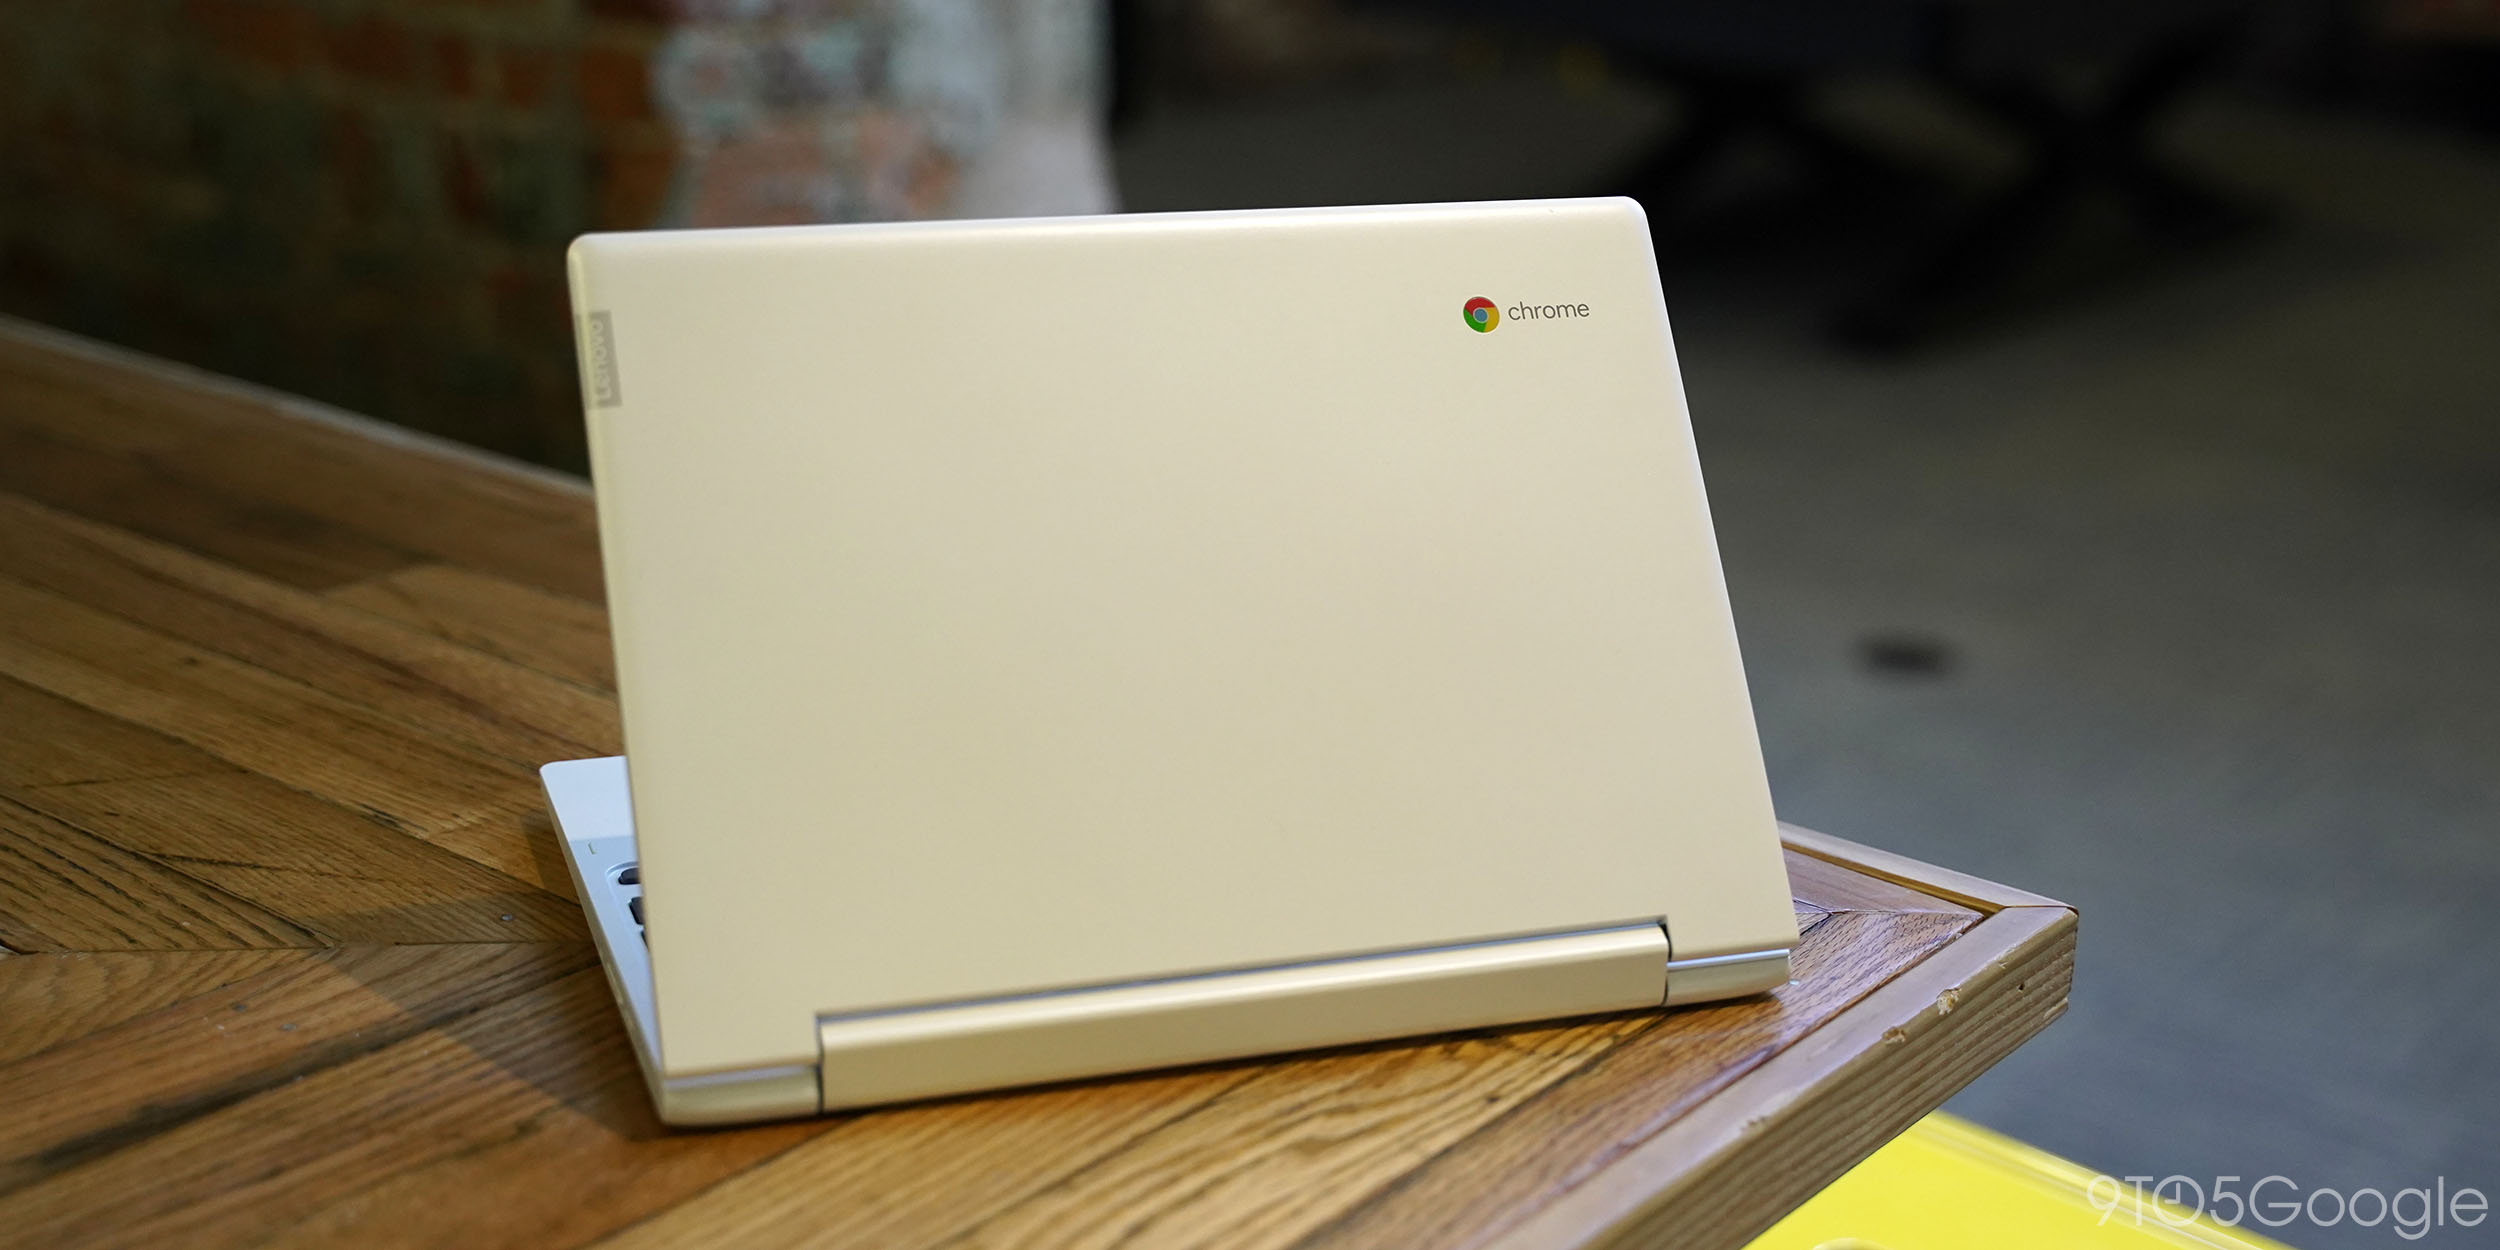 Review: Lenovo Chromebook C330 brings back the budget Chromebook for well under $300